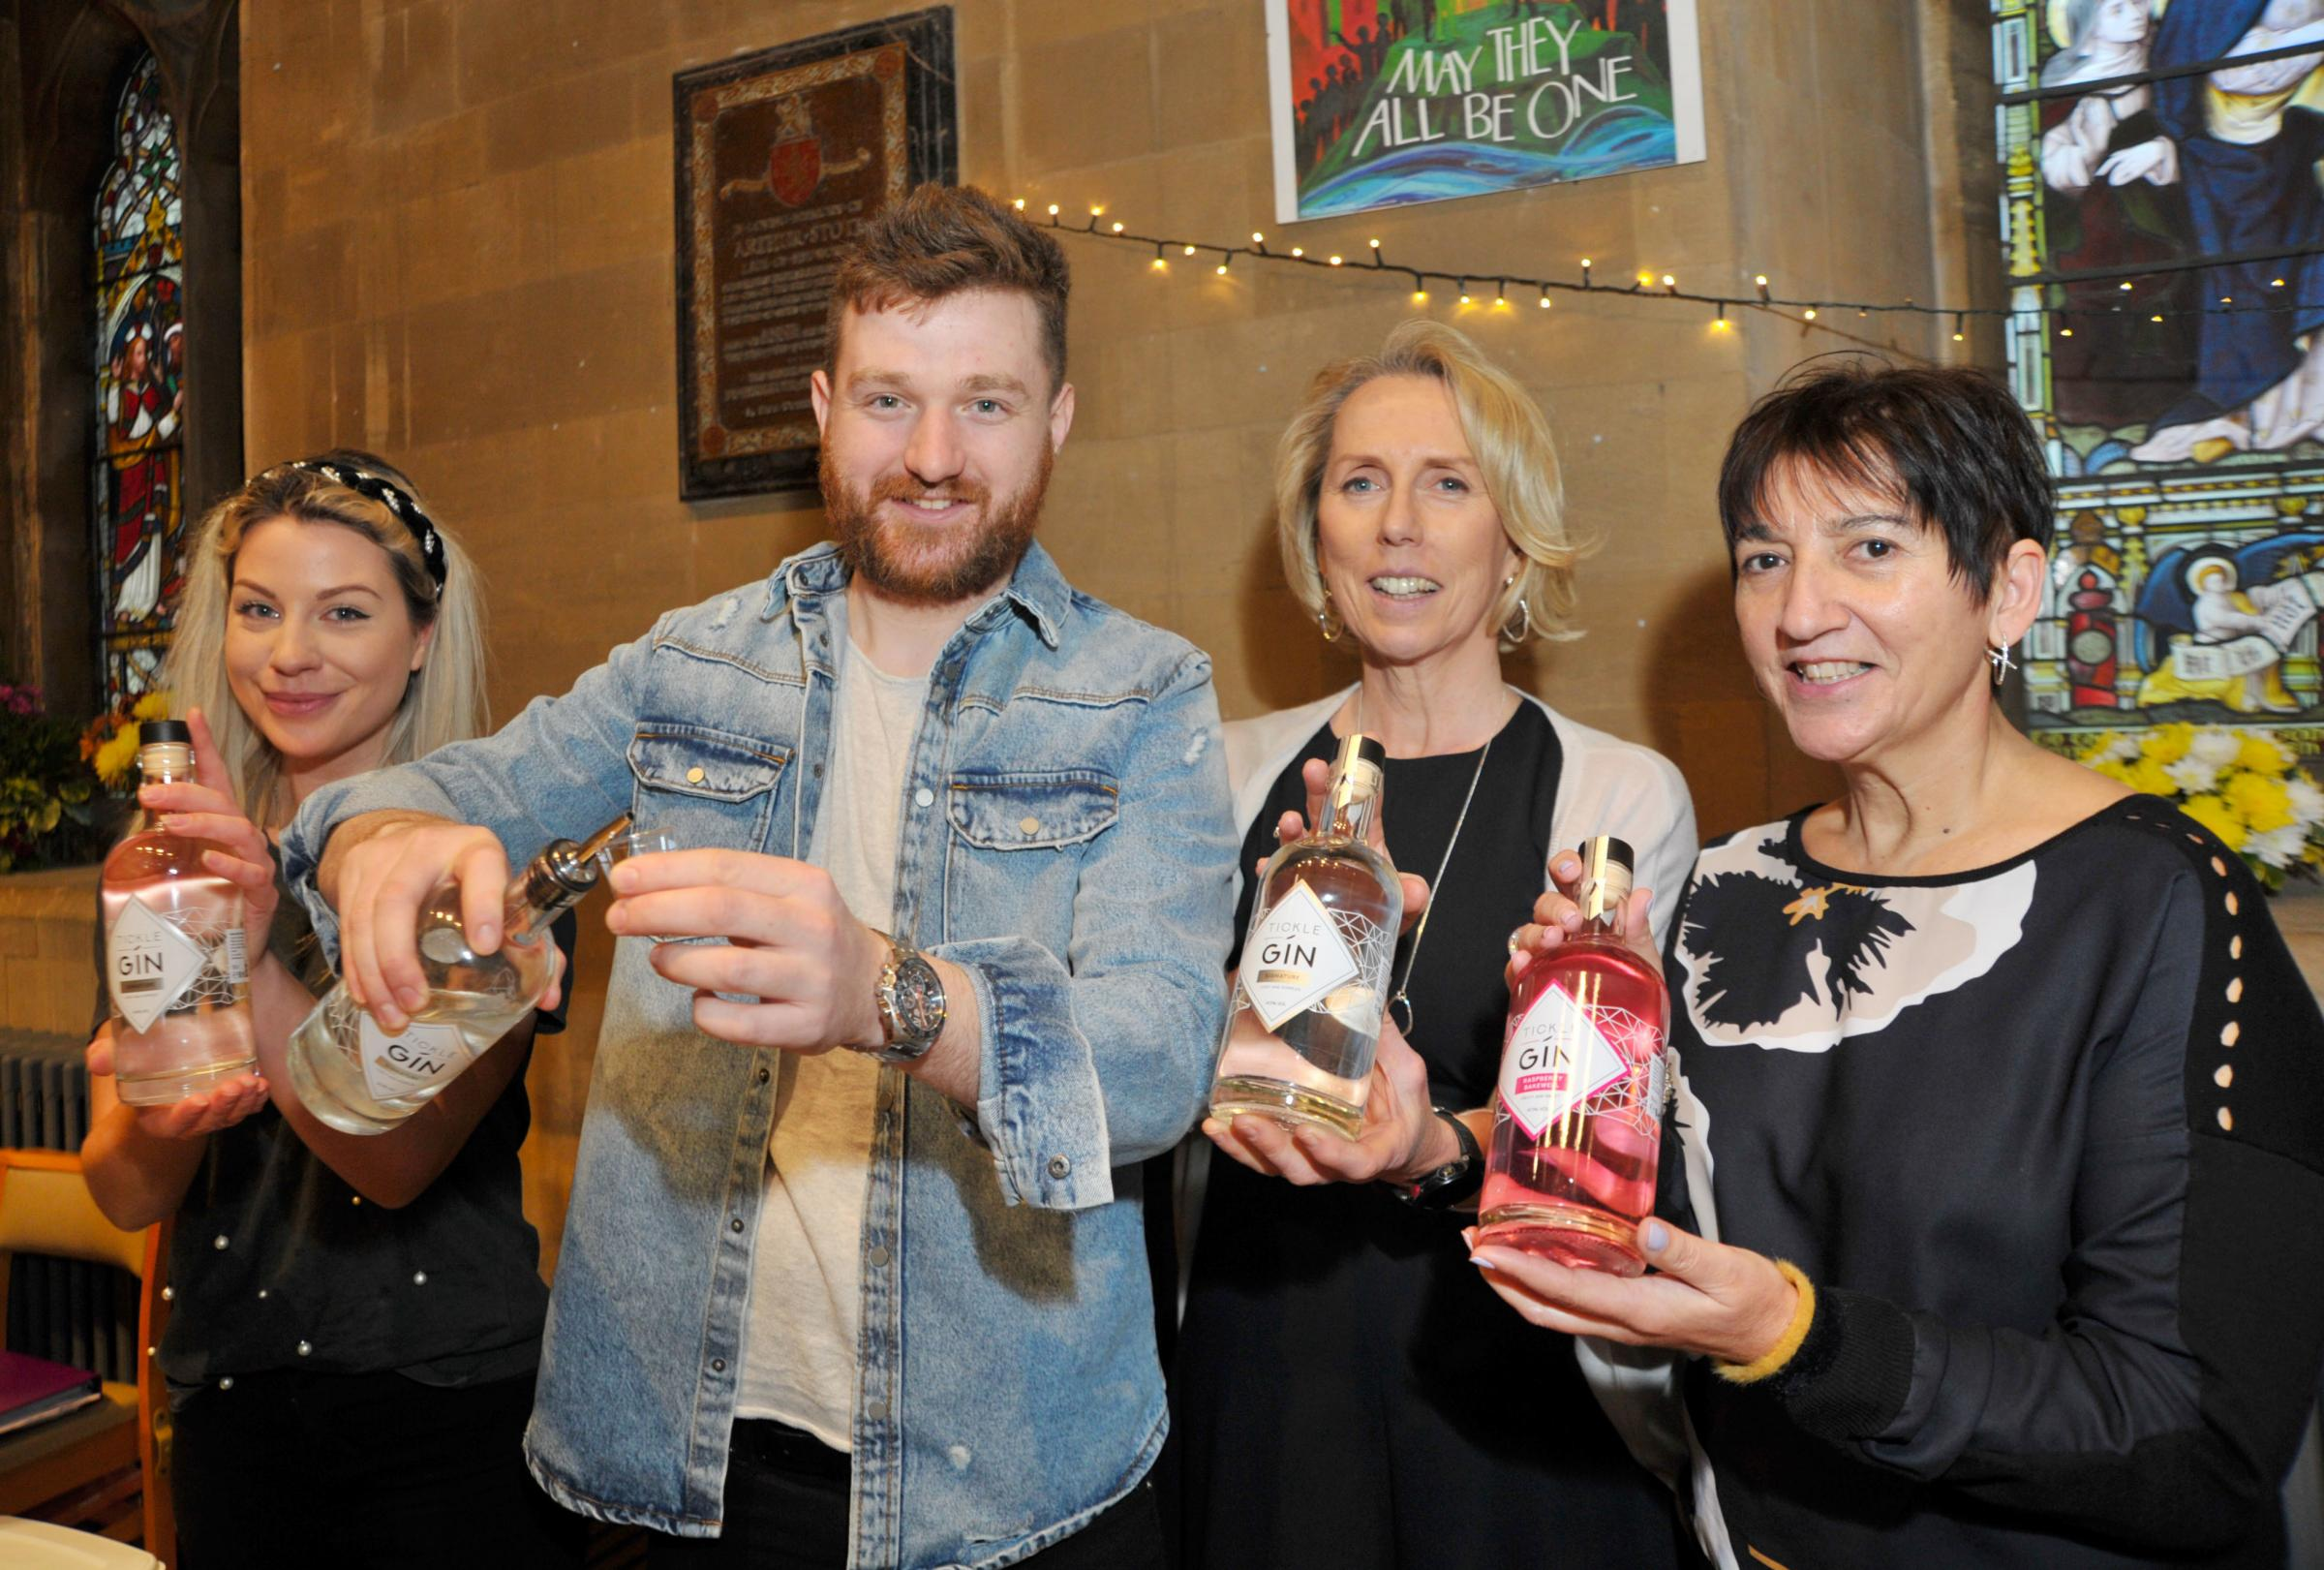 Friends hold gin and Prosecco festival to support charities